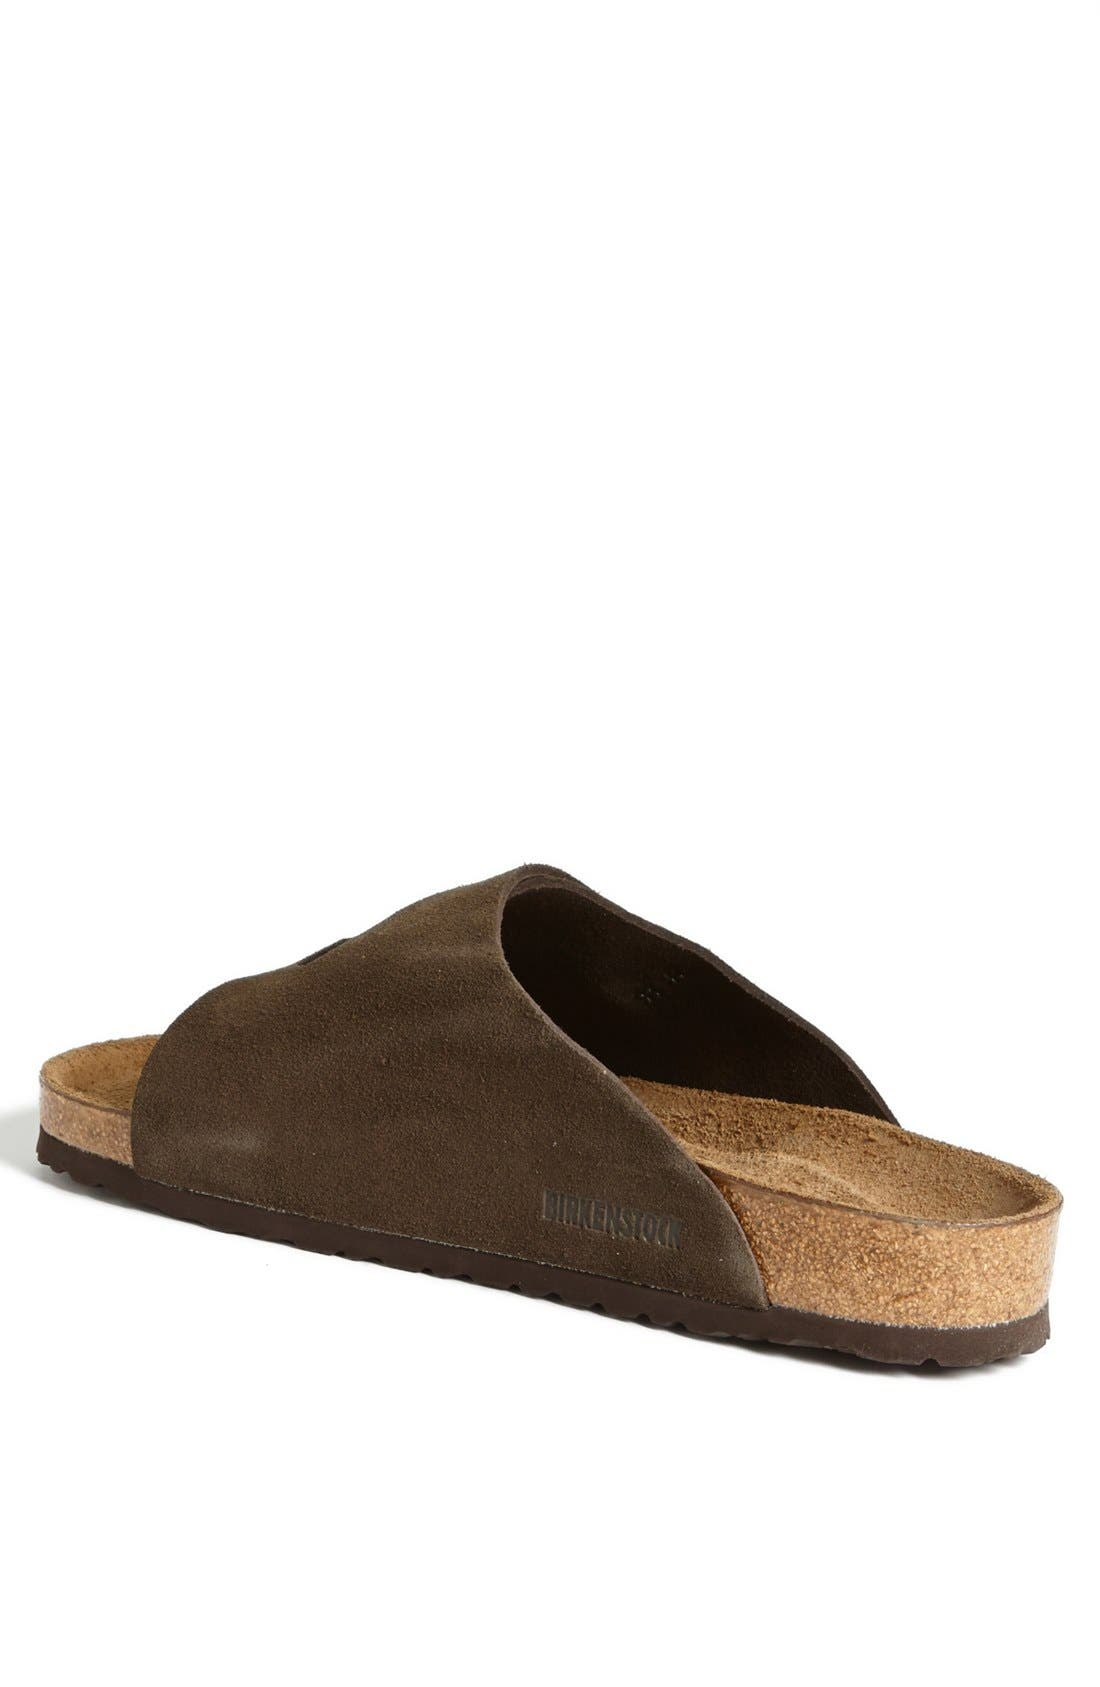 Alternate Image 2  - Birkenstock 'Zürich Soft' Sandal (Men)